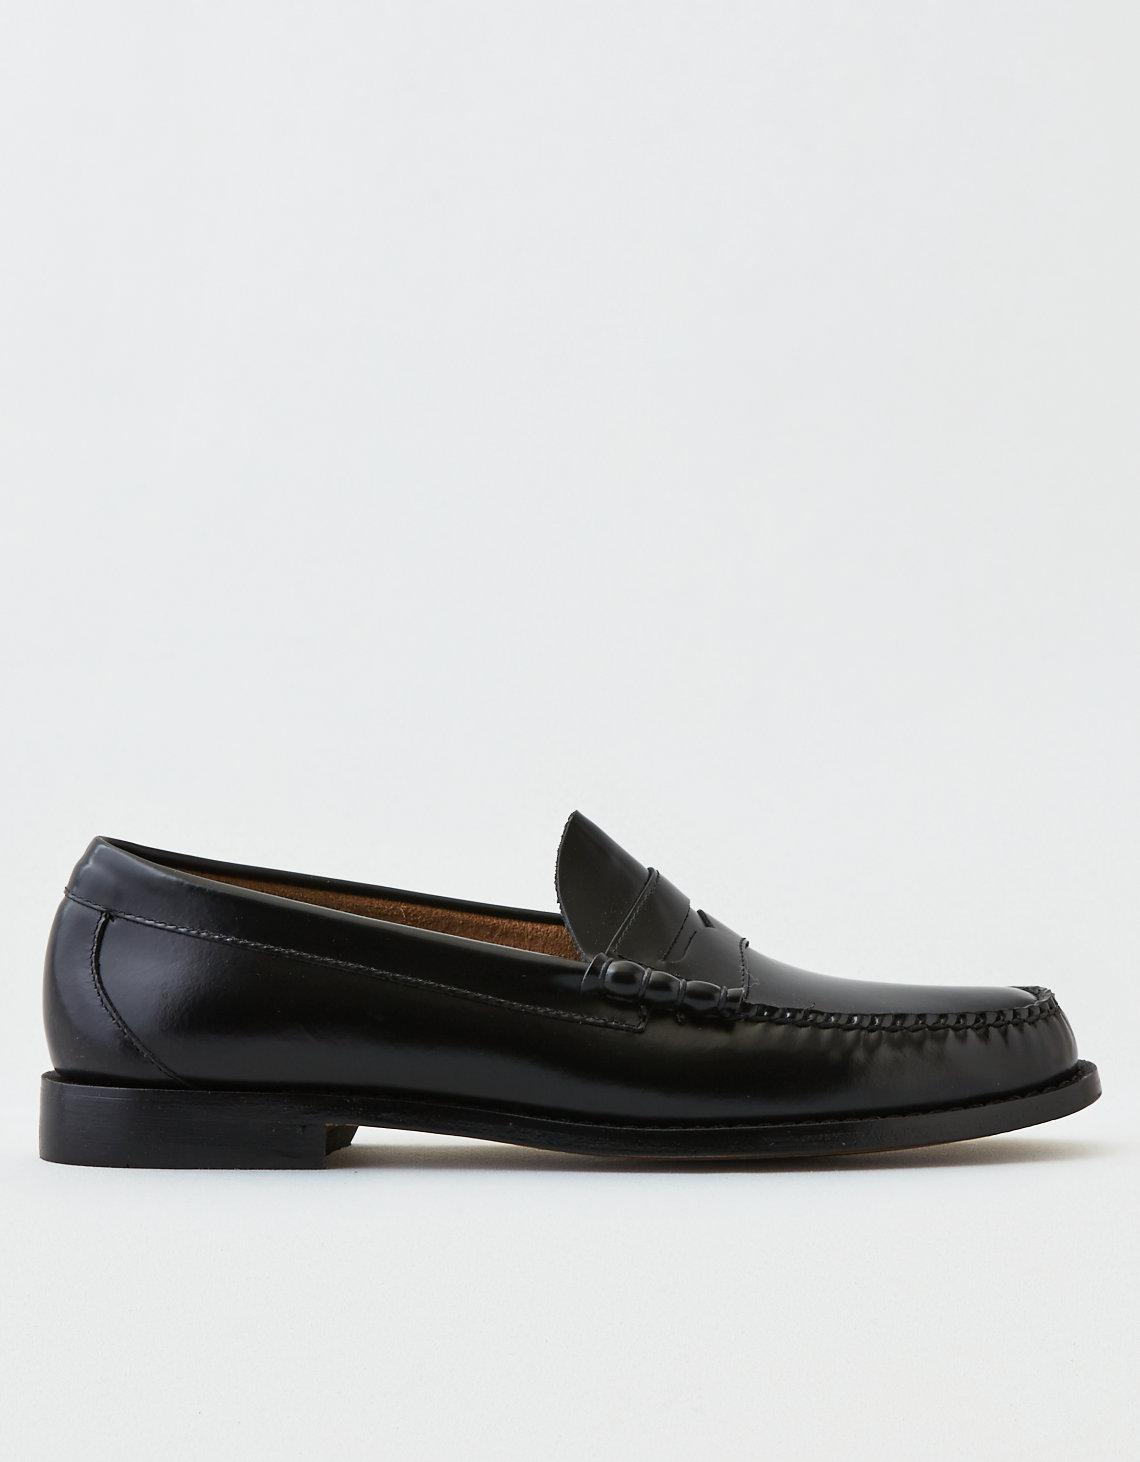 94a691622c8 Lyst - American Eagle Bass Weejun Loafer in Black for Men